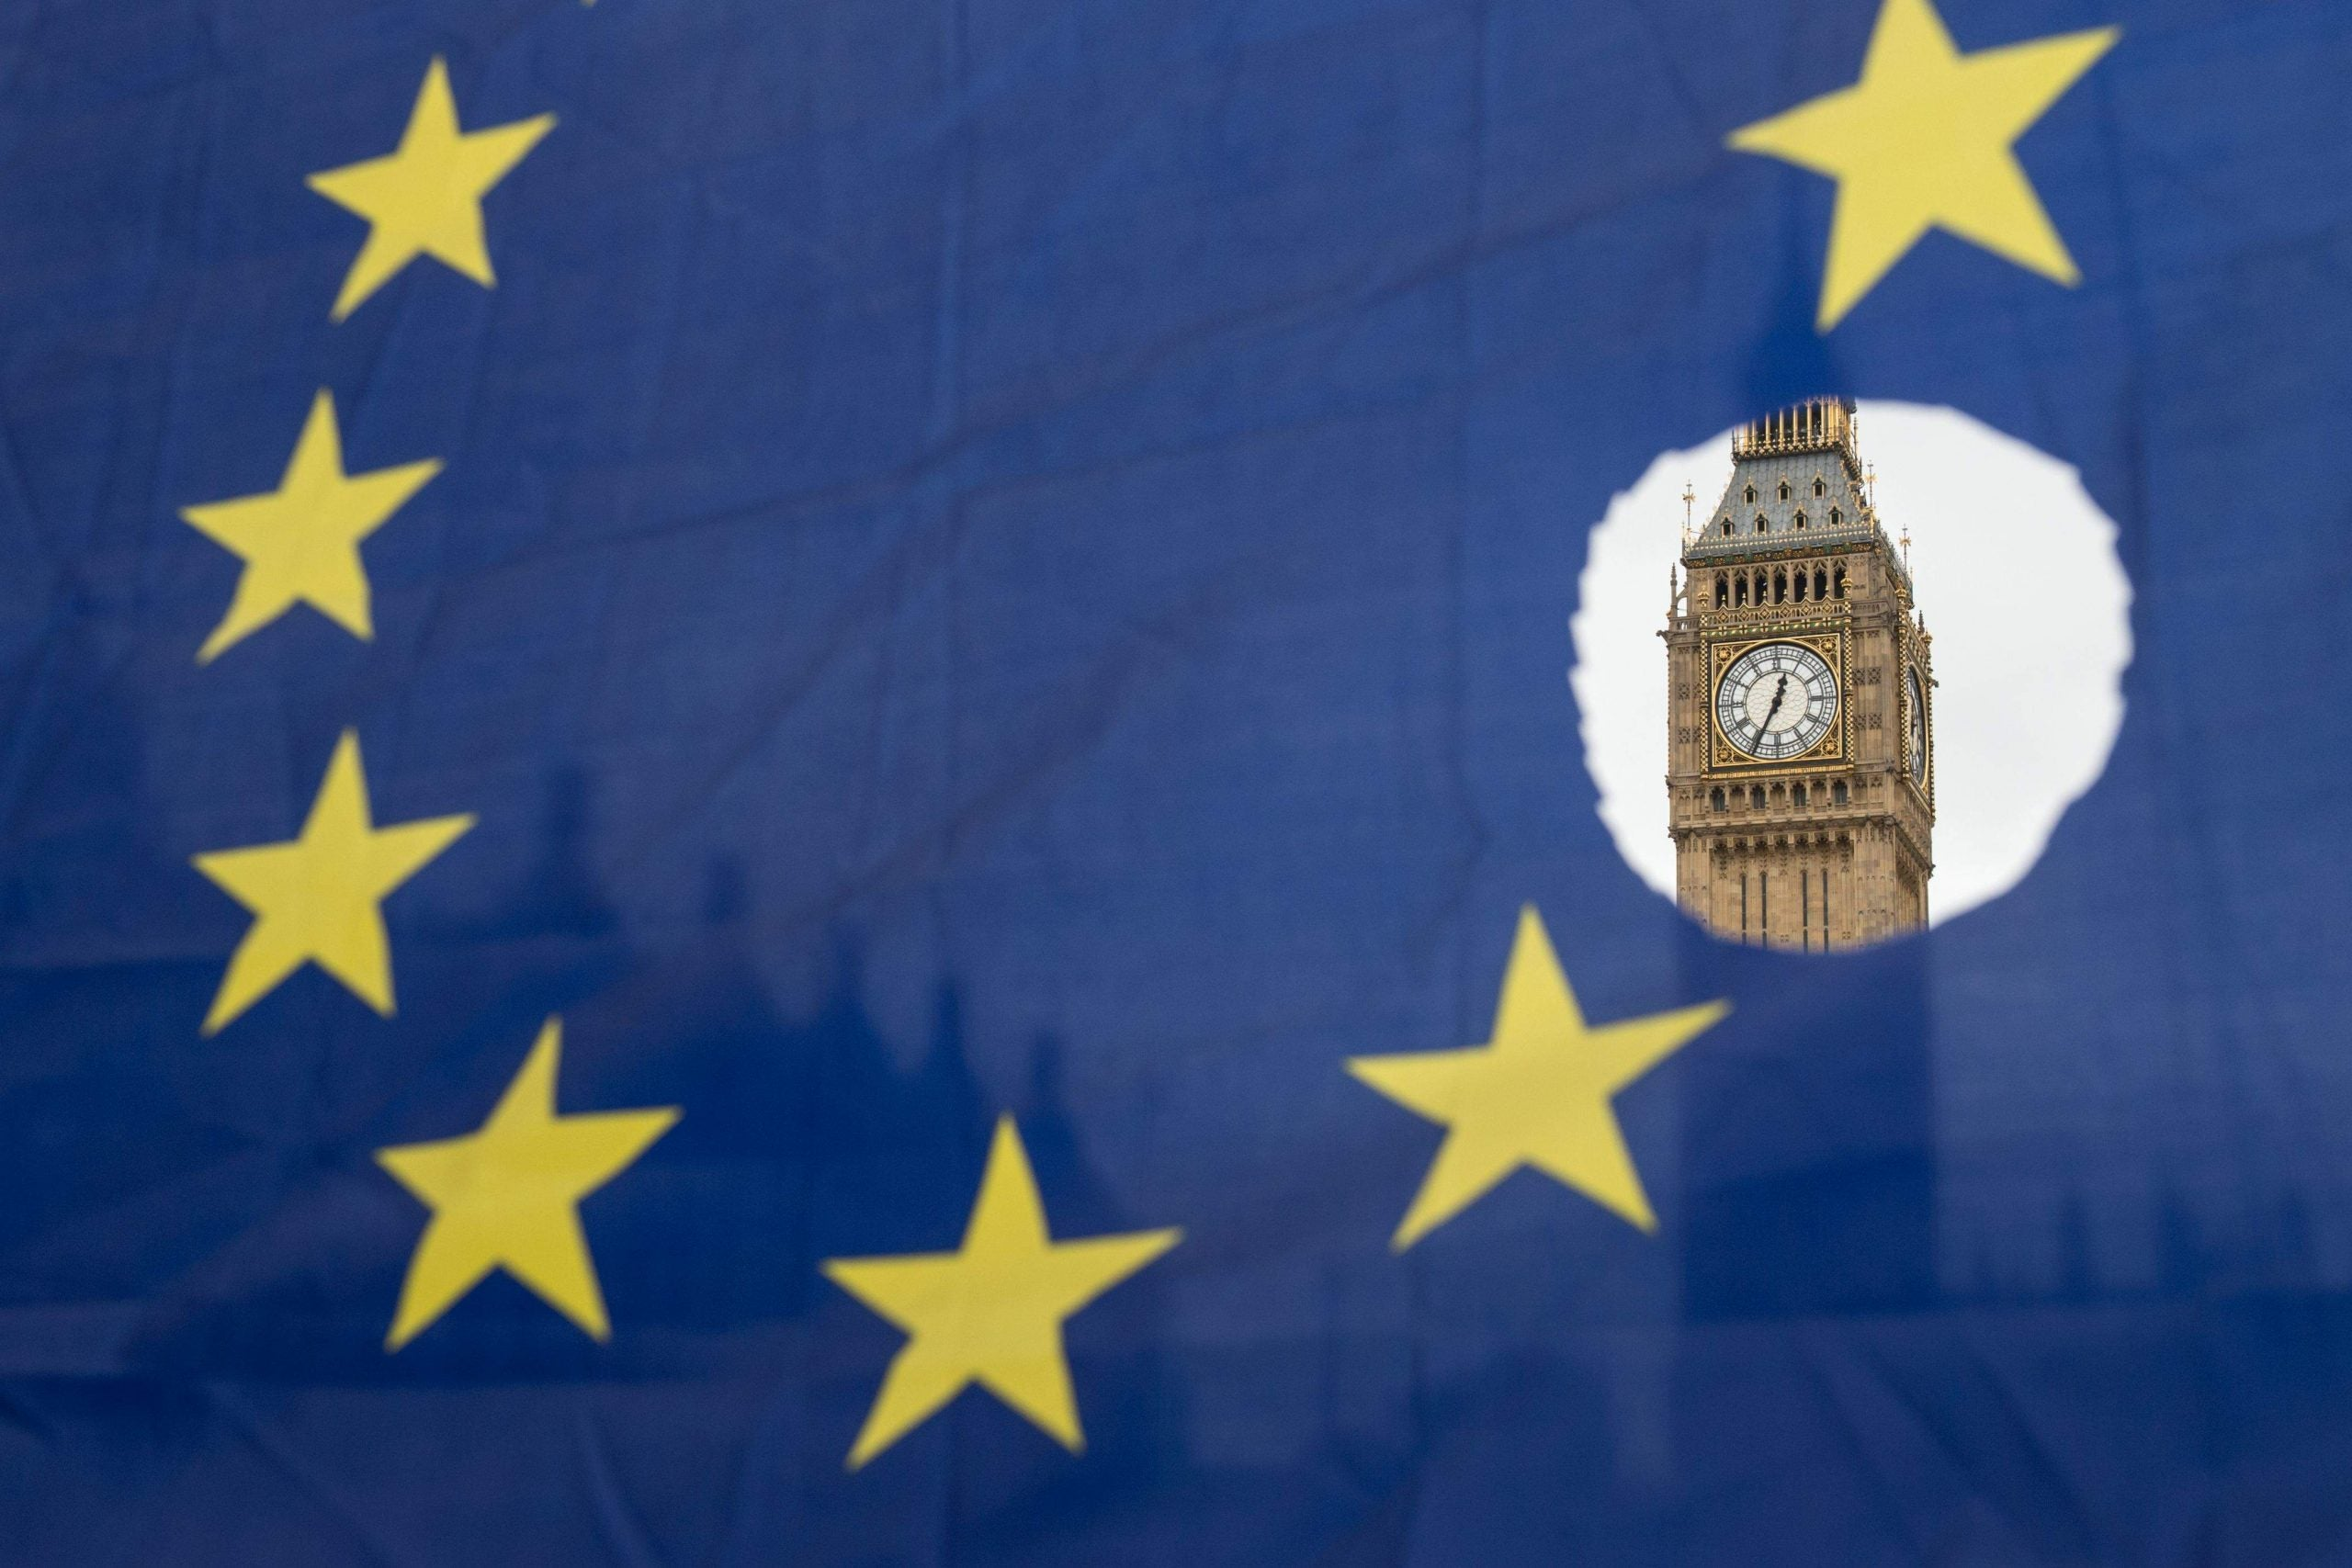 EU nationals in the UK are distressed and anxious - a single act could reassure them